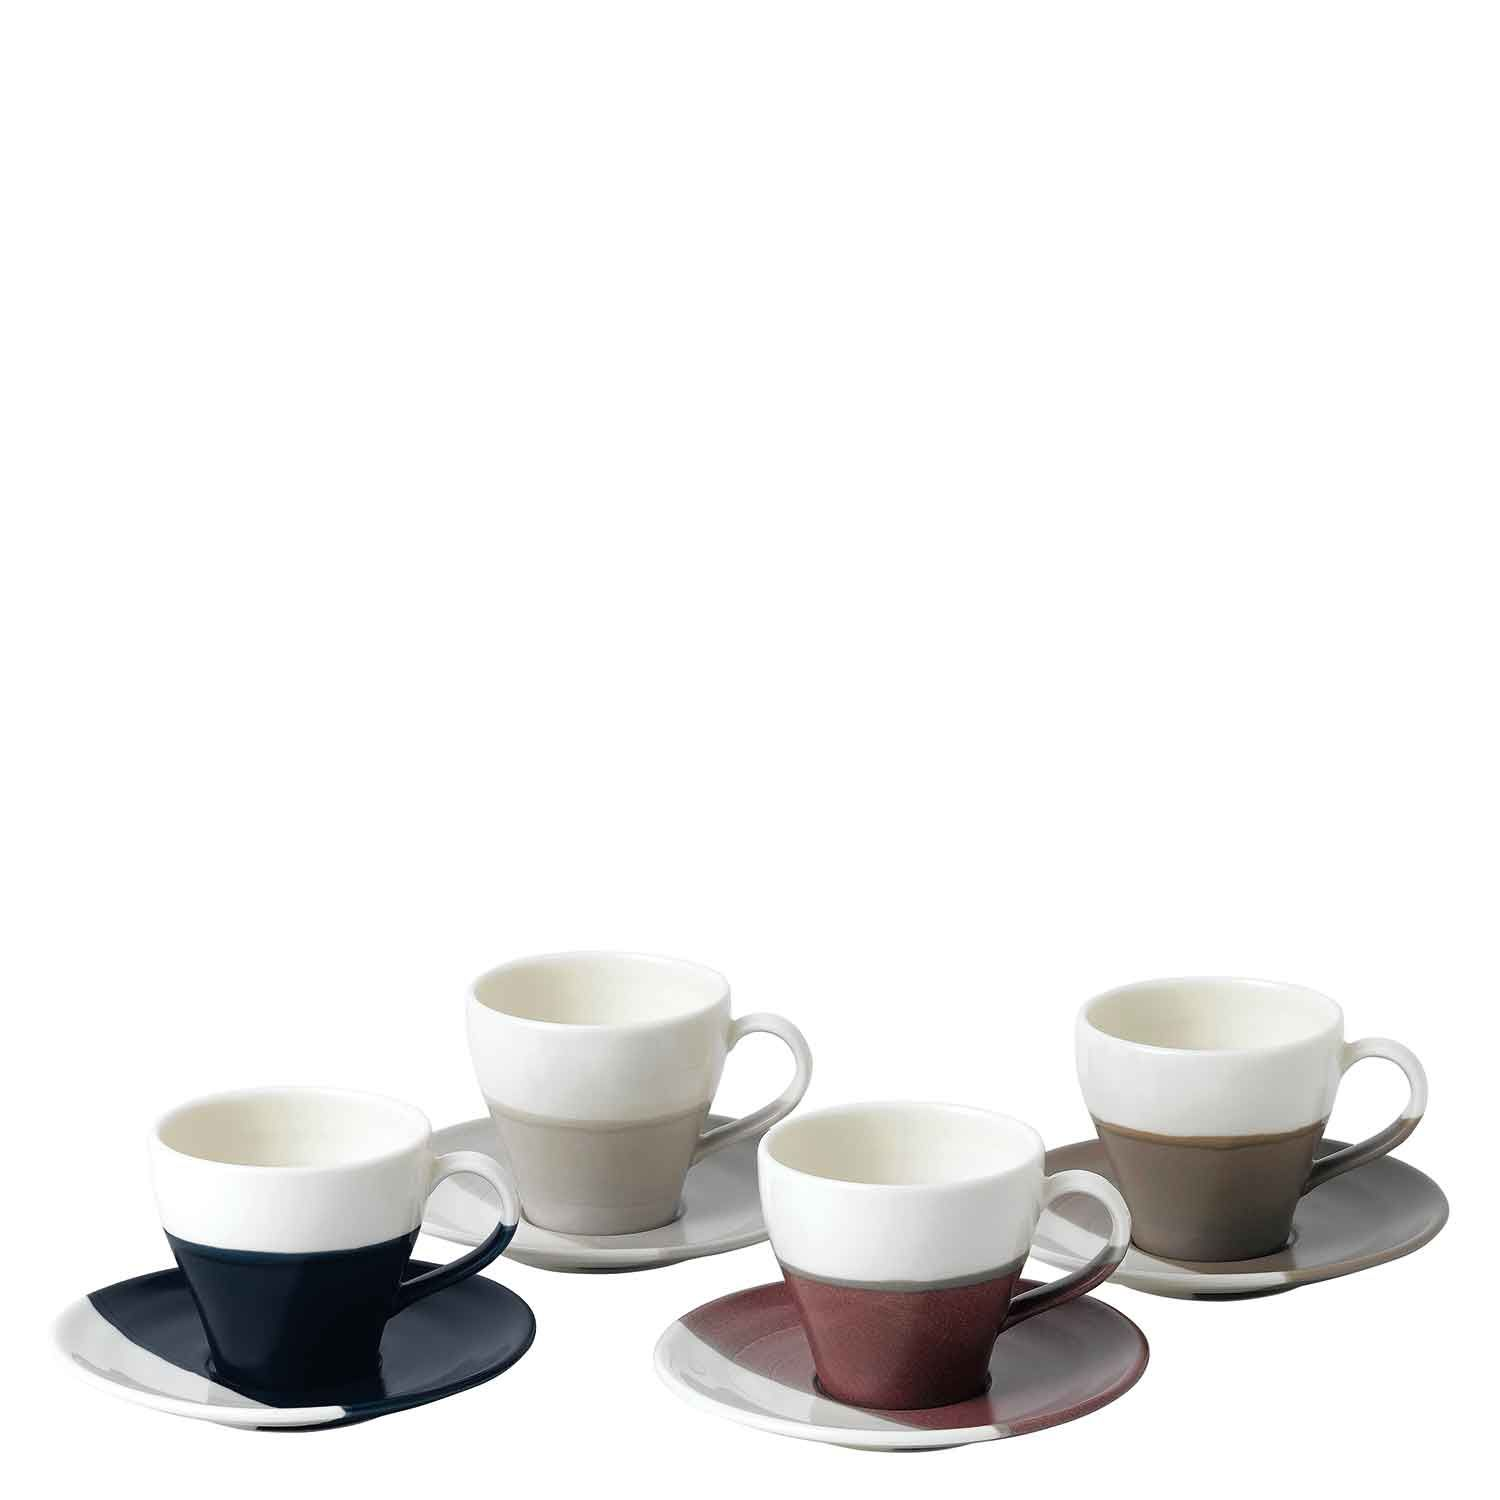 5 Best Espresso Cups [How to Choose Your Espresso Cup Set]